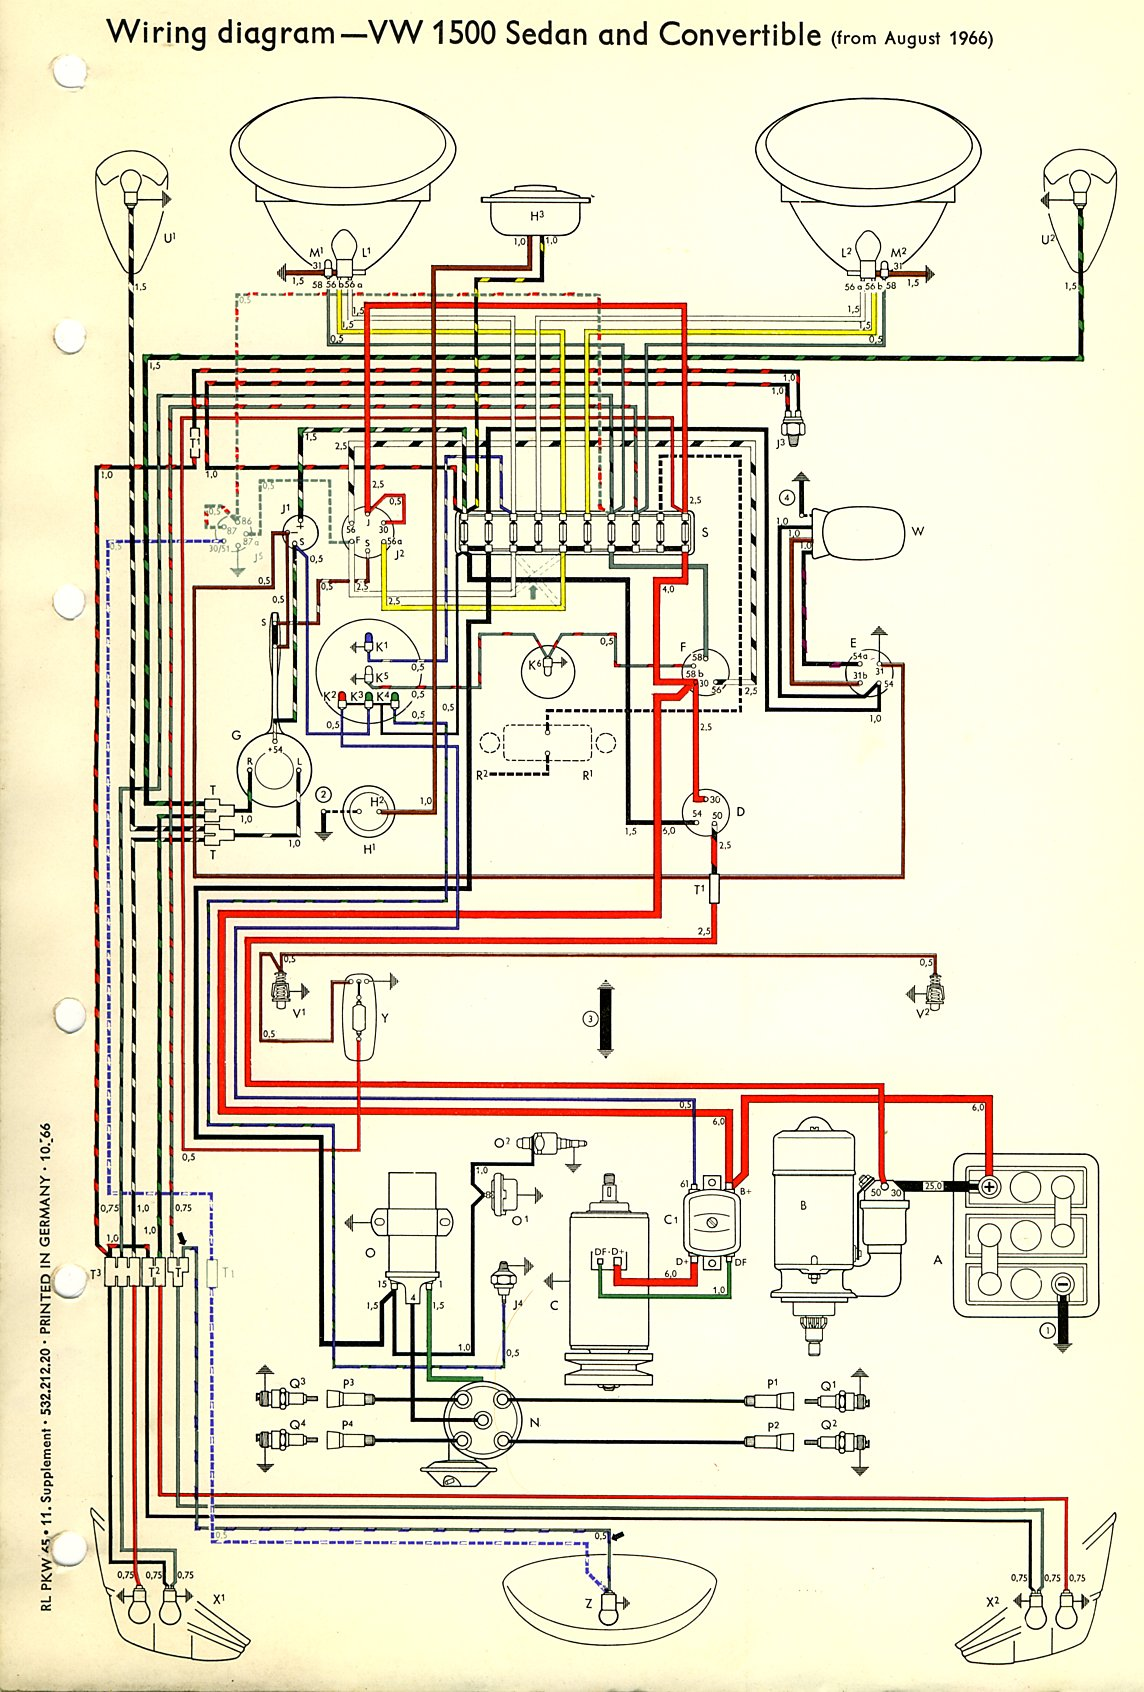 1974 chevrolet wiring diagram 1956 chevrolet wiring 2000 saturn sl2 fuse  box diagram 2000 saturn sl stereo wiring diagram